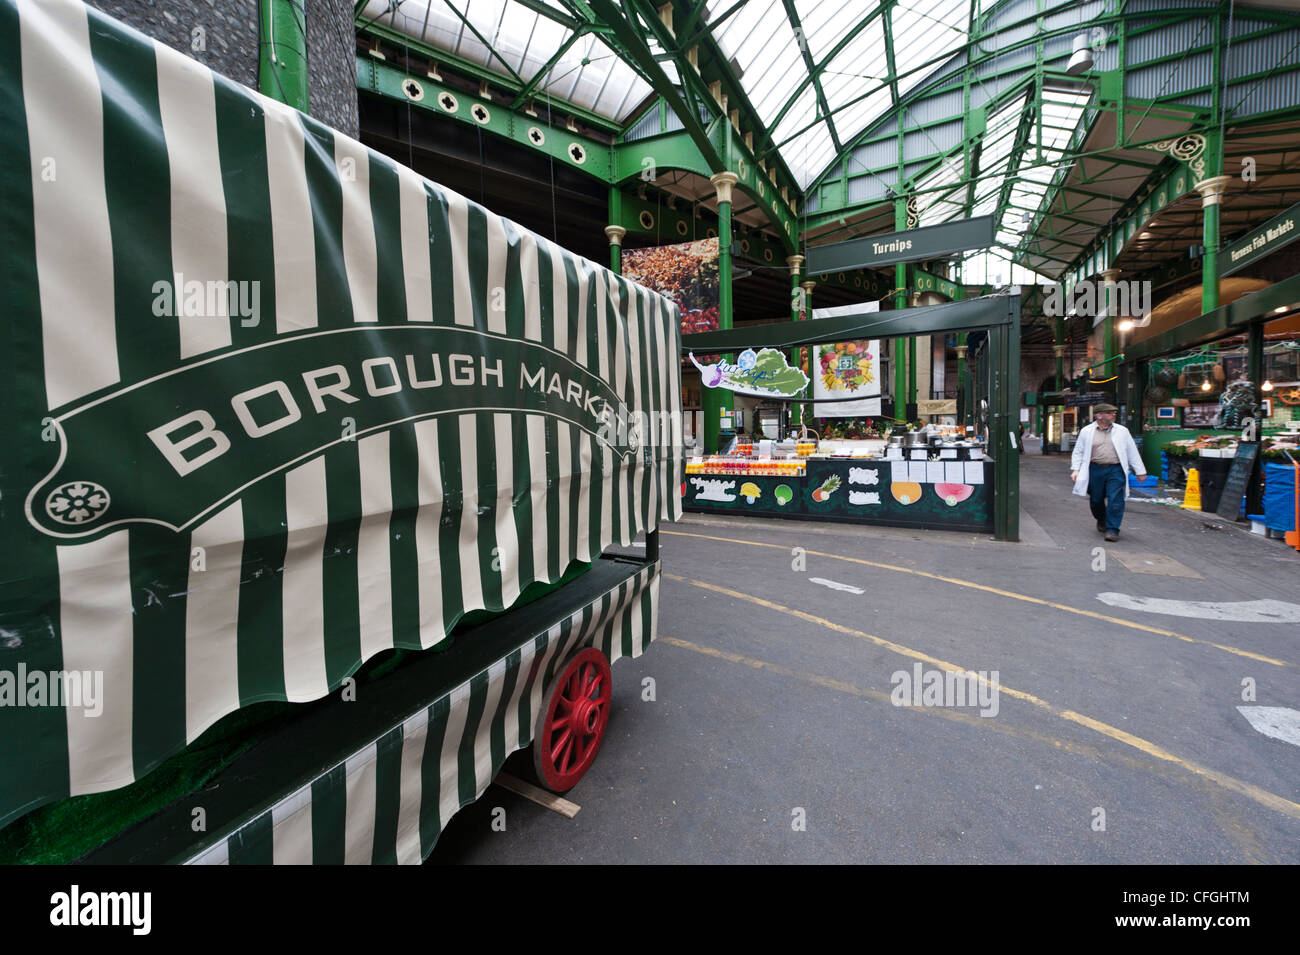 Stall or barrow at Borough Market London UK - Stock Image